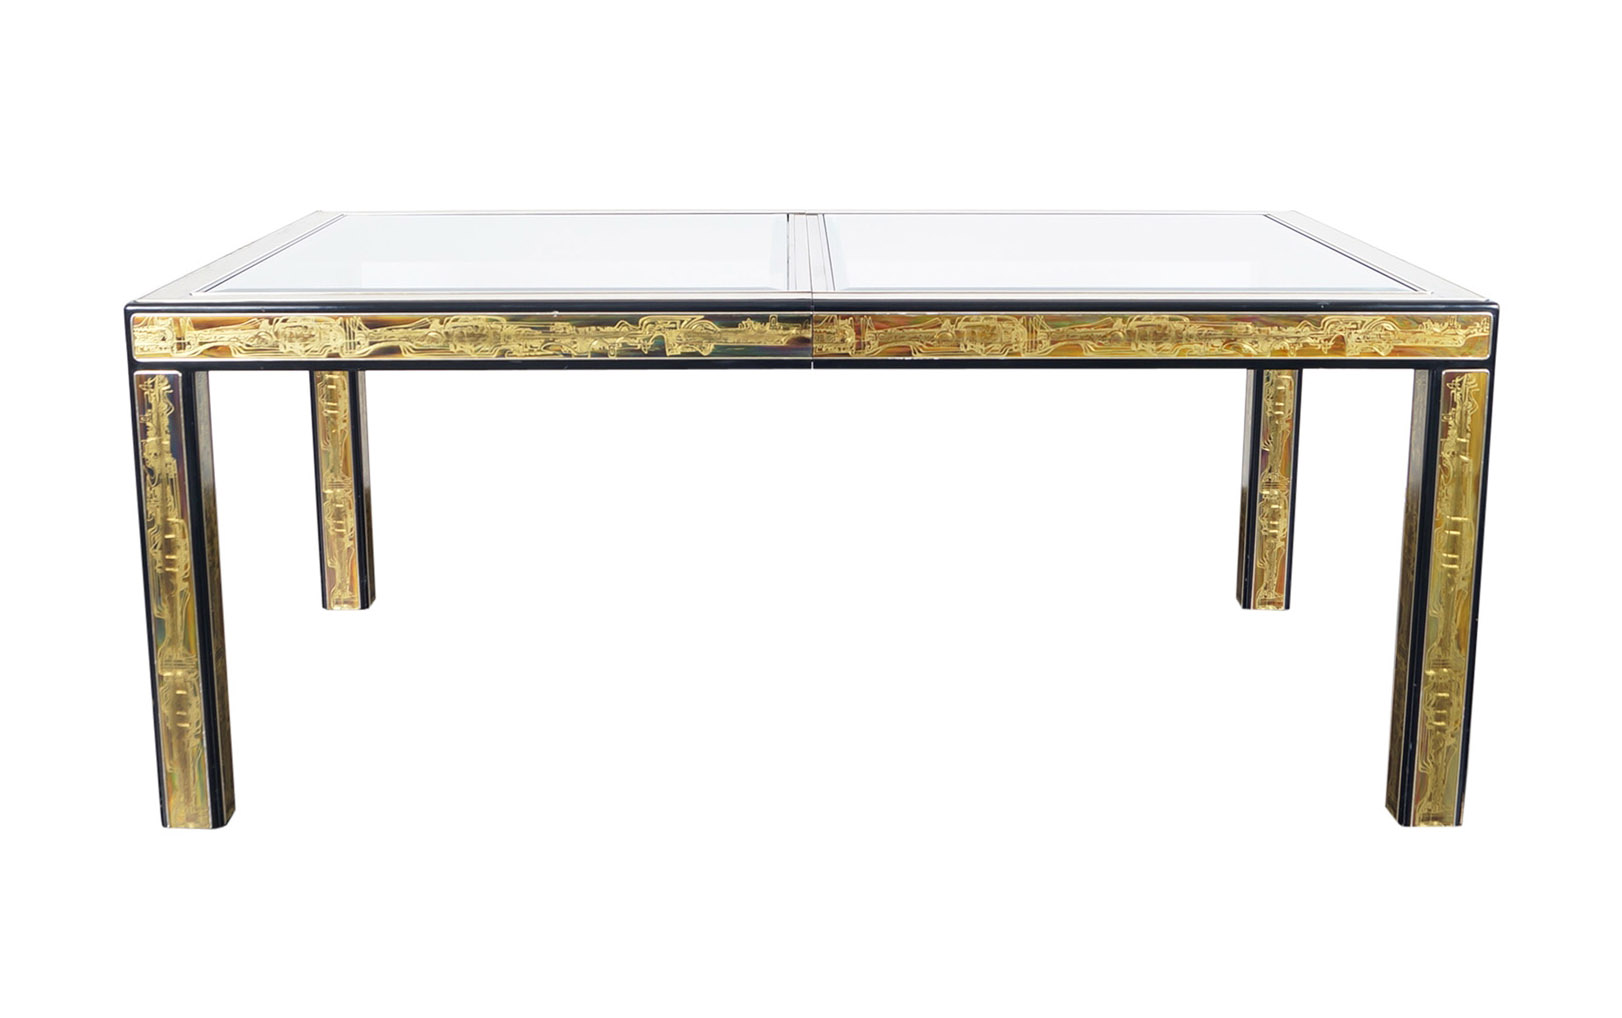 Vintage Etched Brass Dining Table by Mastercraft